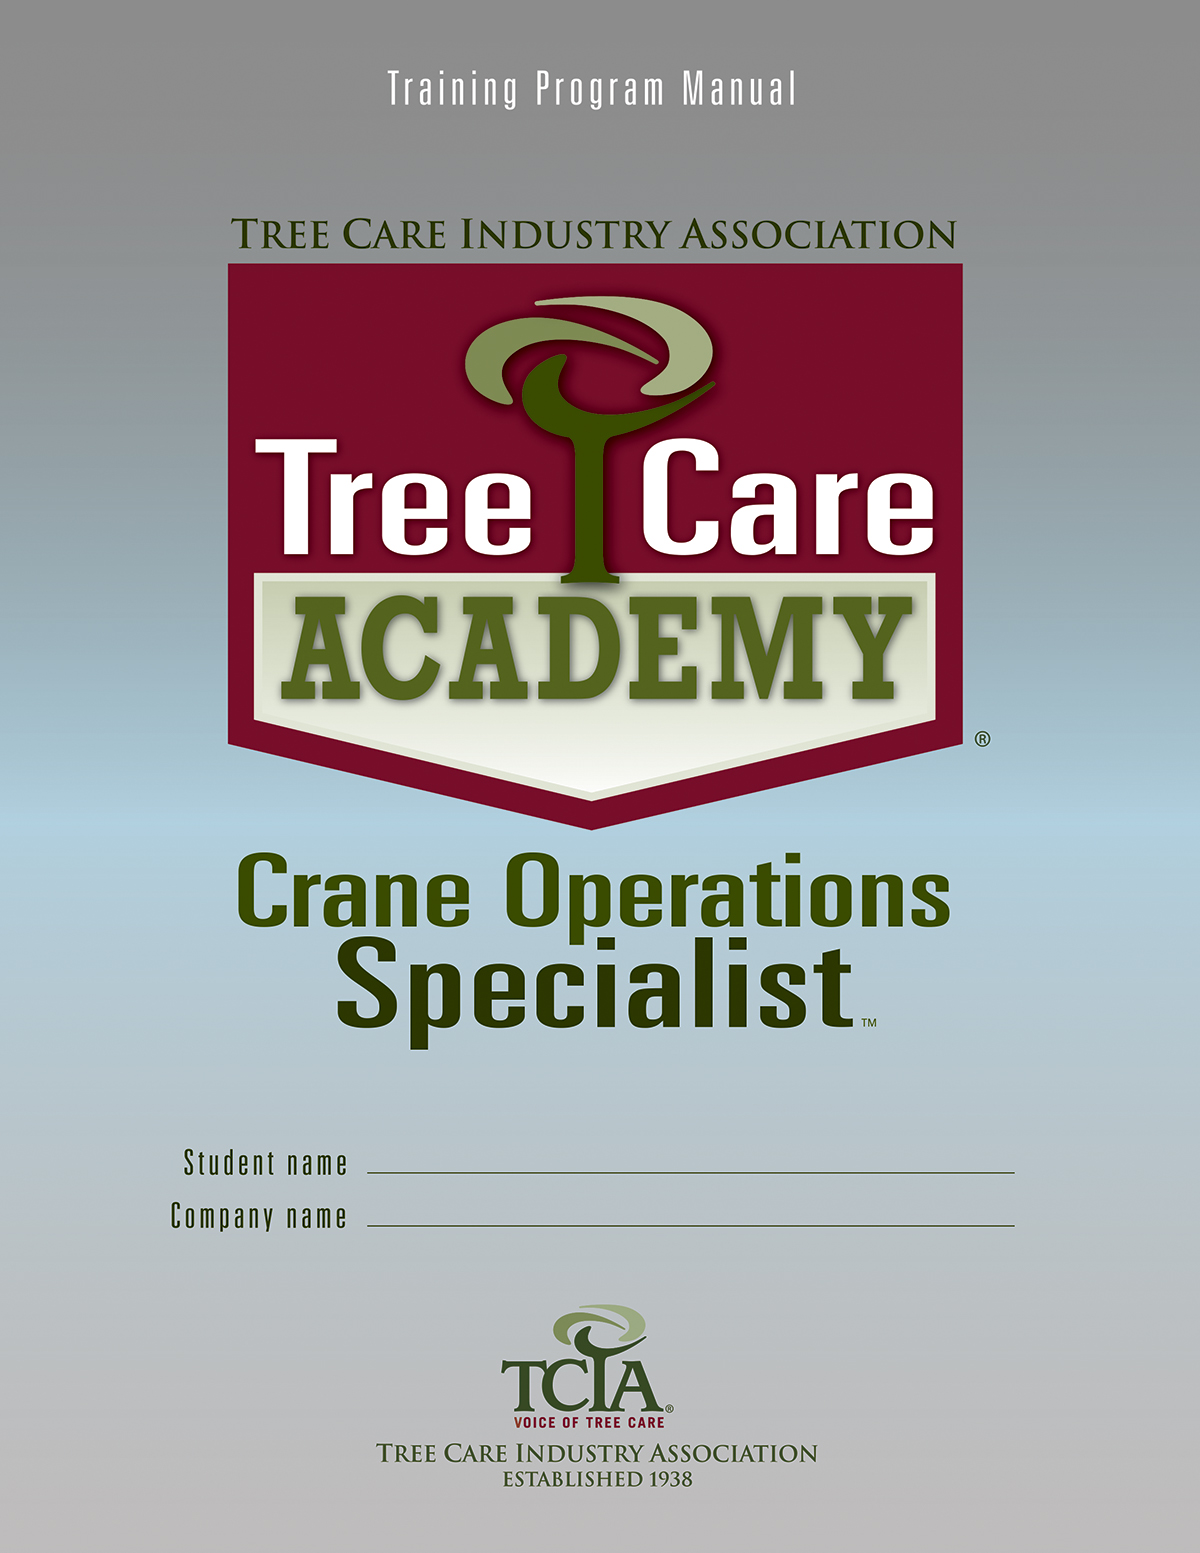 Tree Care Academy Crane Operations Specialist